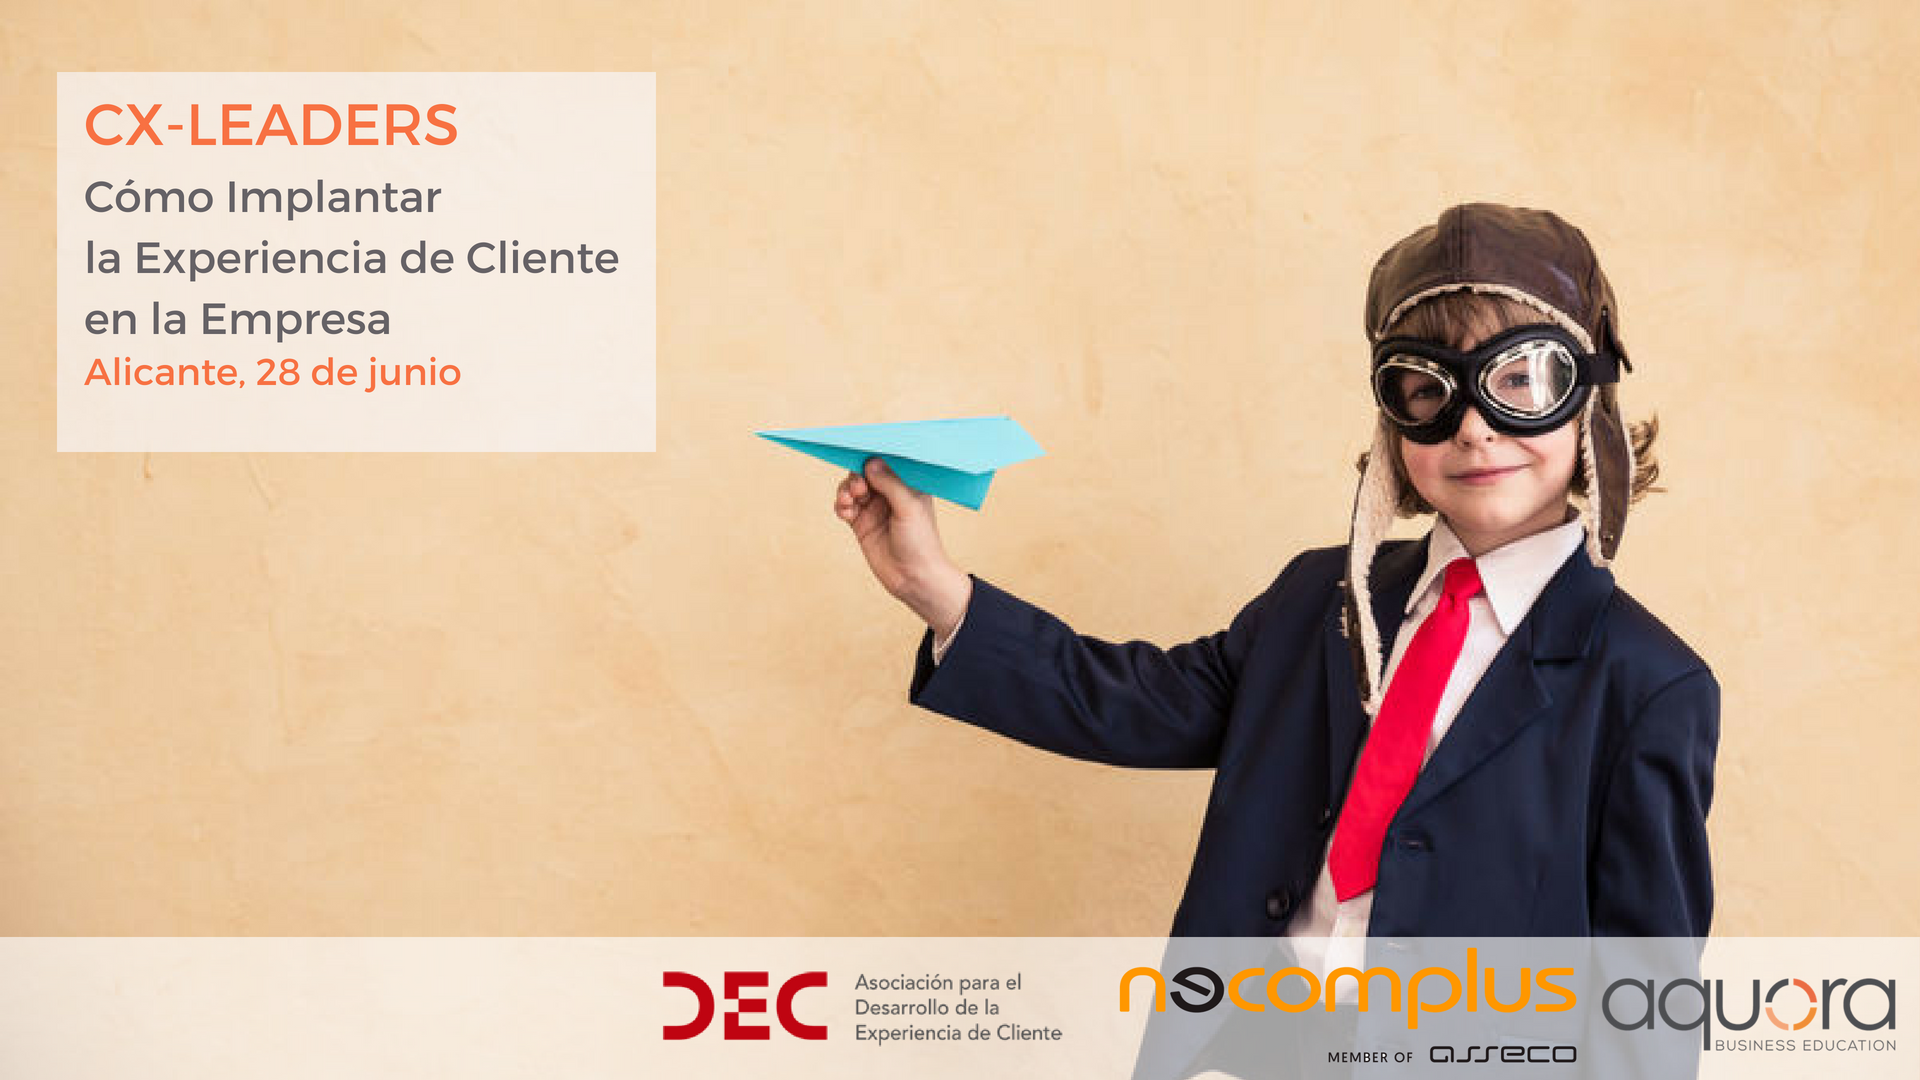 cx leaders Alicante experiencia cliente